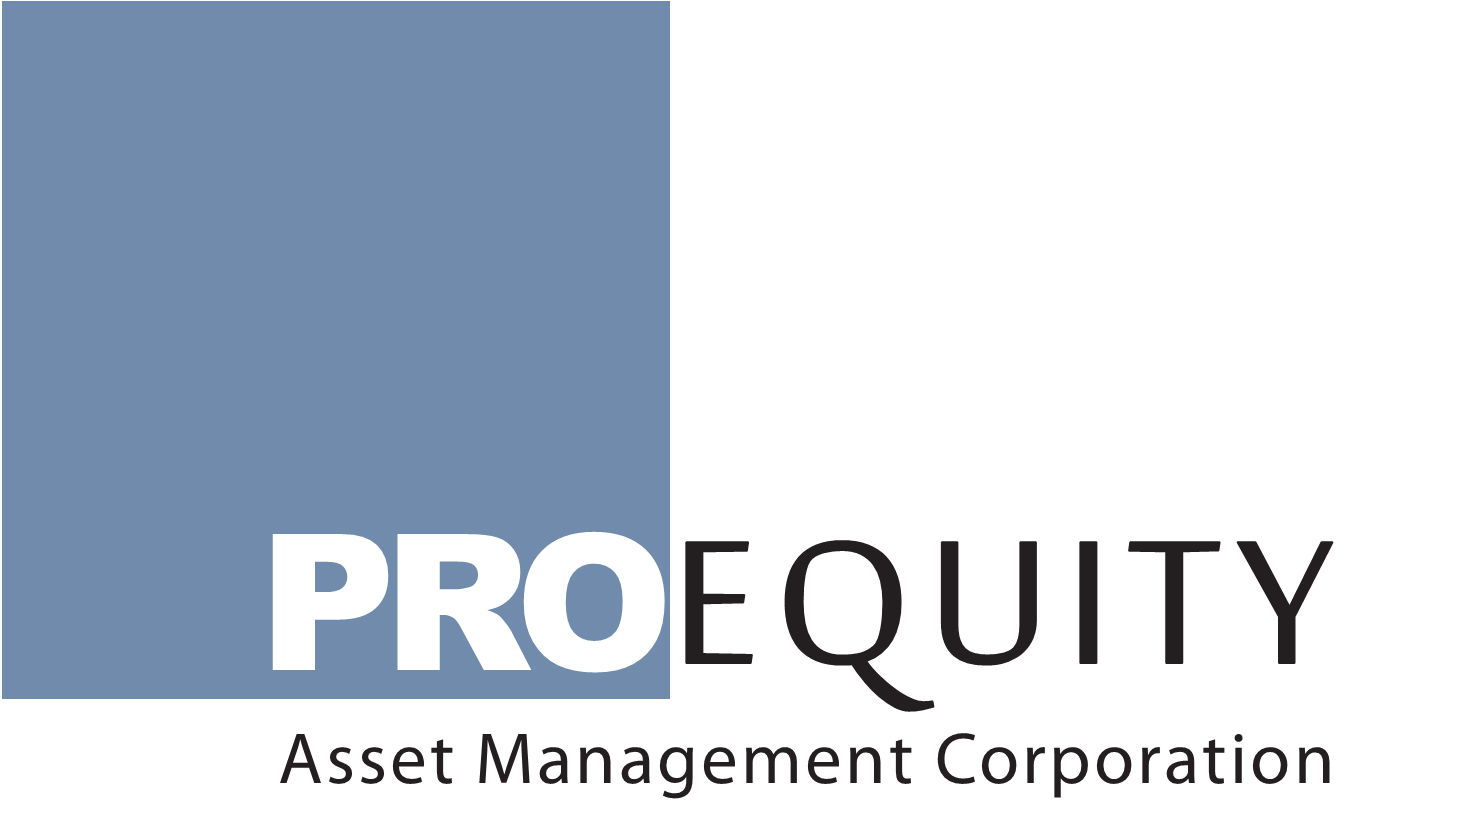 ProEquity Asset Management